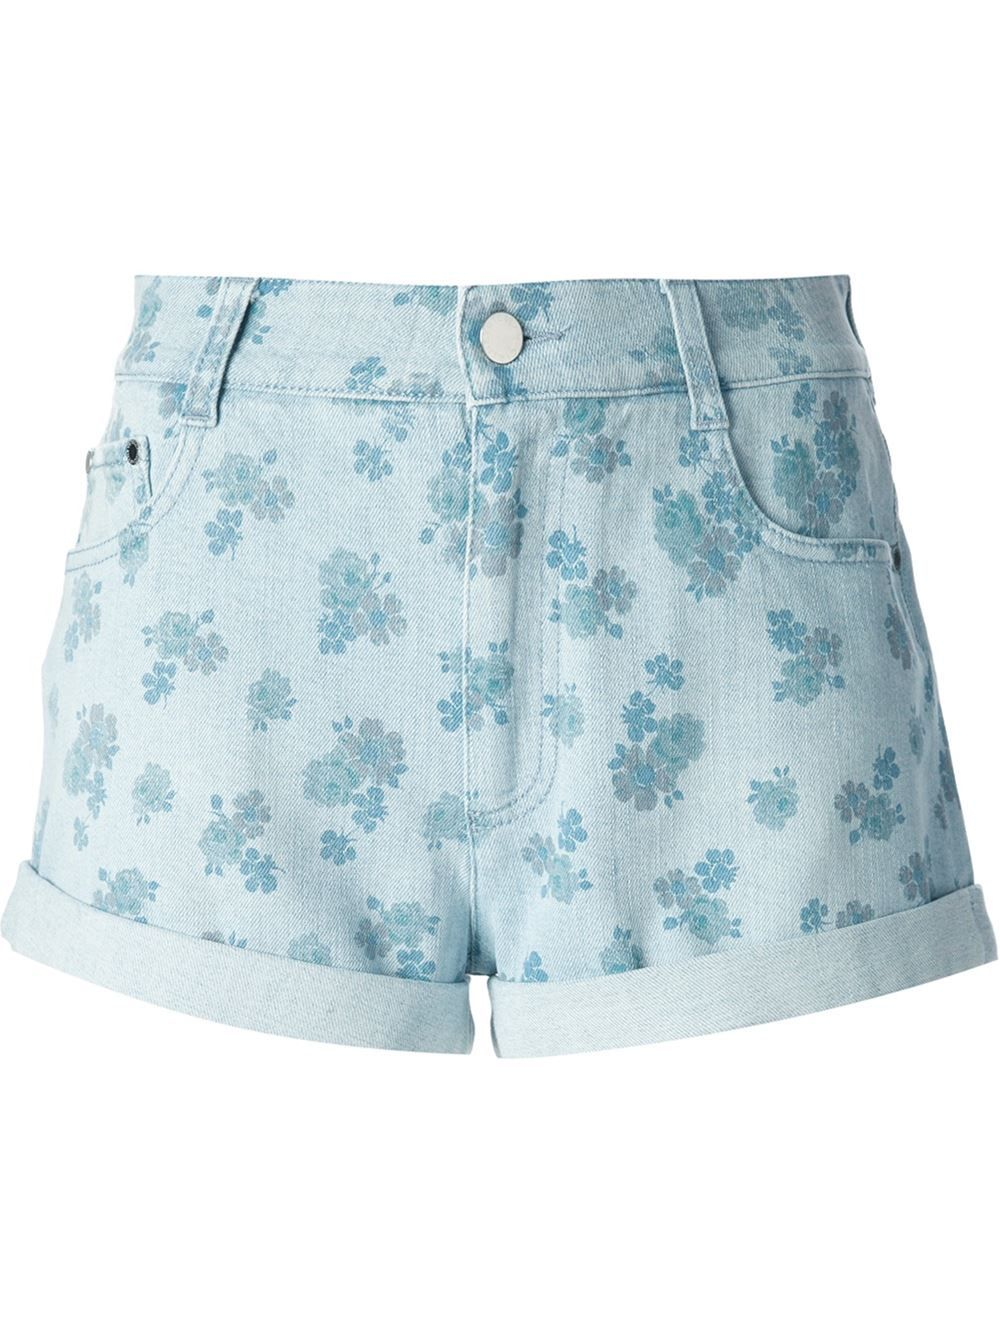 Pale blue stretch cotton floral print denim shorts from Stella McCartney featuring belt loops, a button and zip fly, a five pocket design and turn up hems.